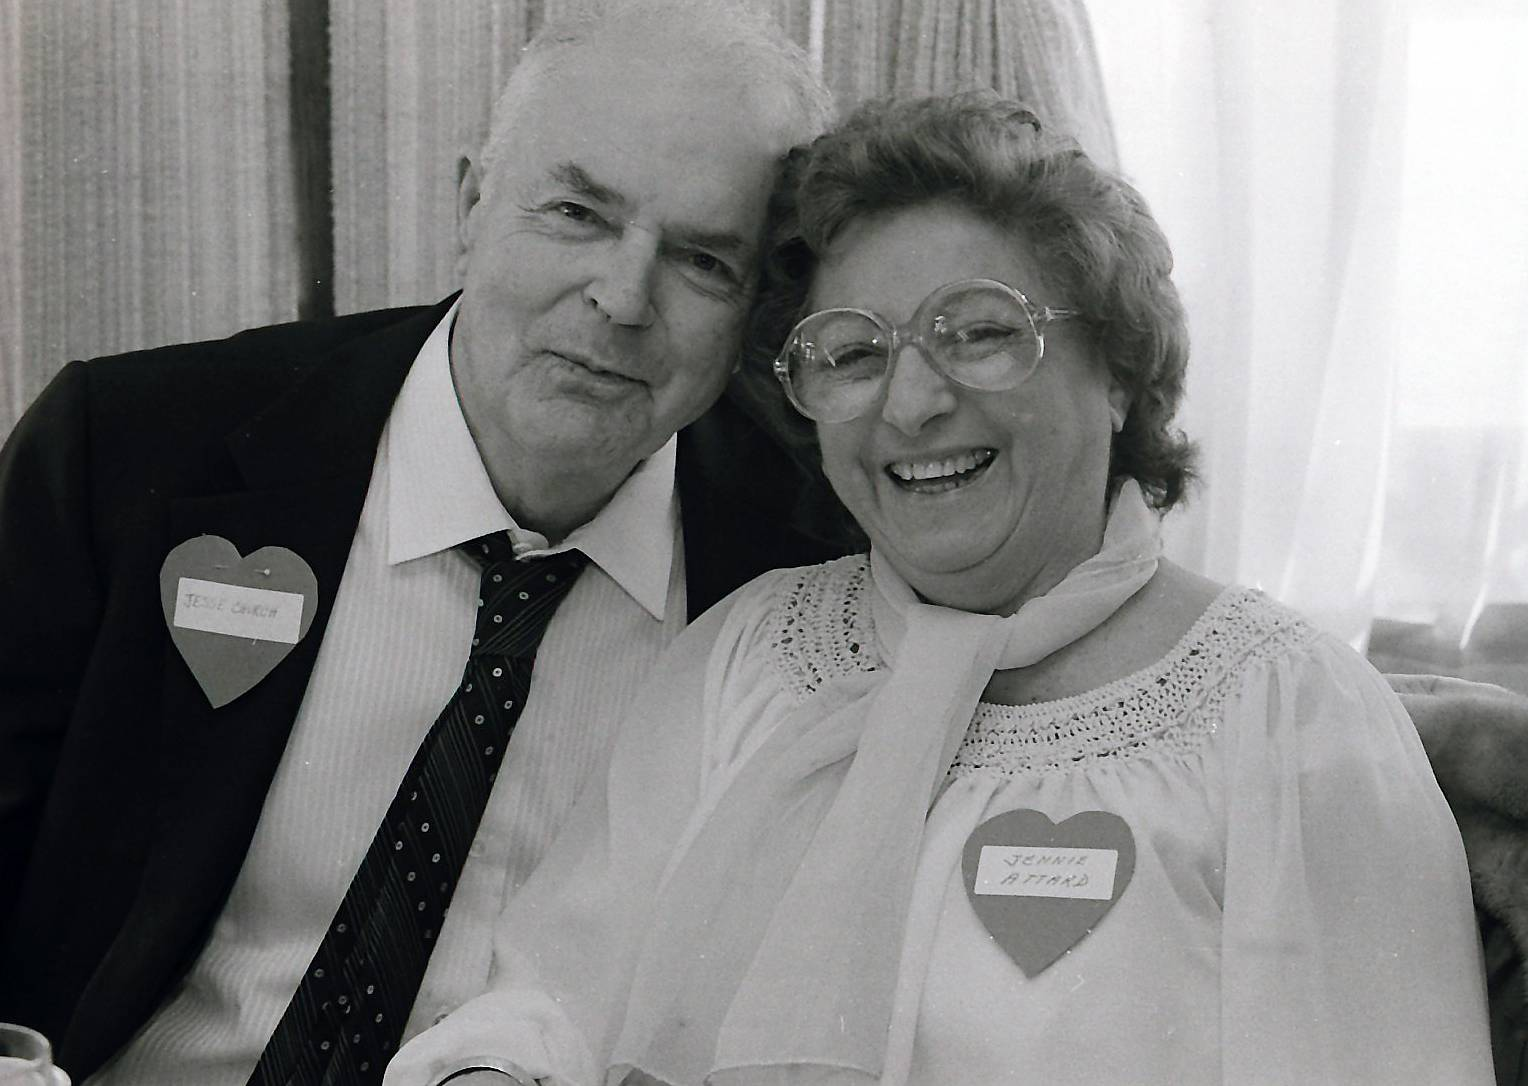 A senior Valentine's Day party in Buffalo Grove in 1985.